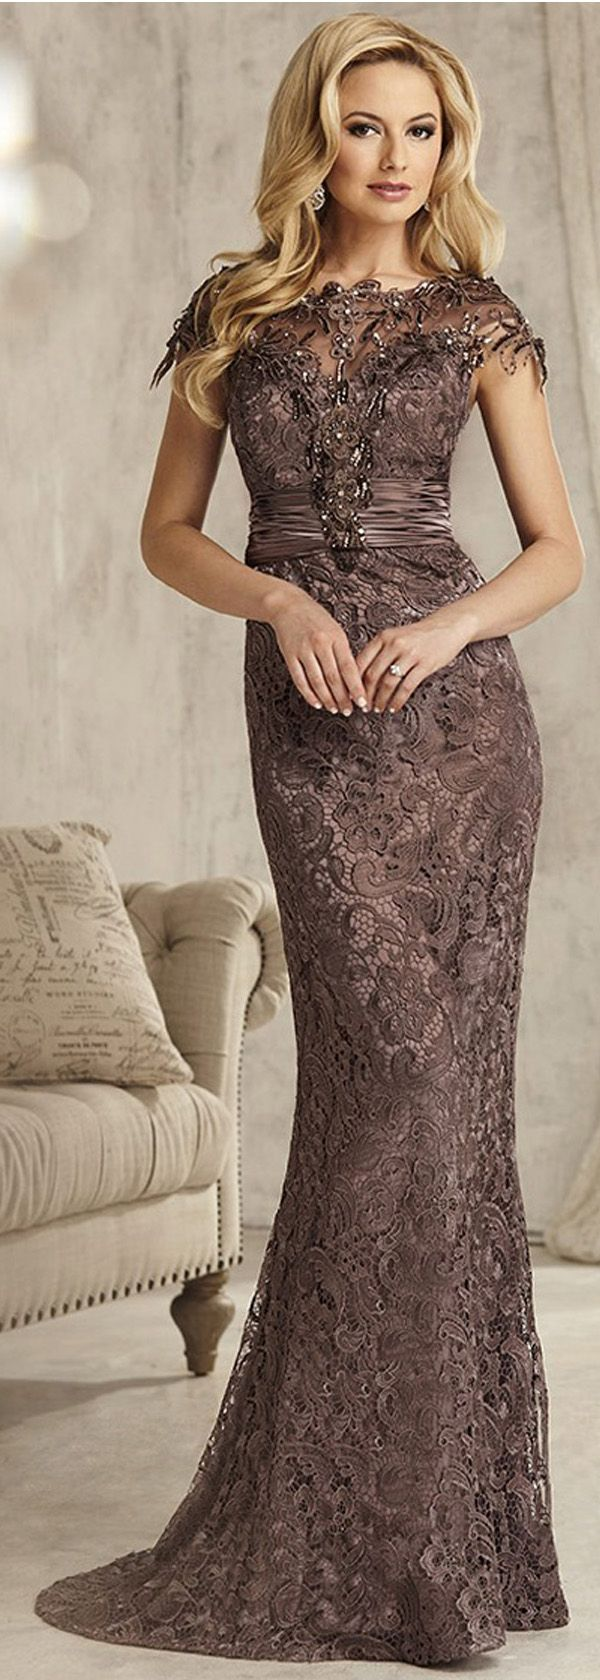 Chic Lace Bateau Neckline Mermaid Mother Of The Bride Dresses With Beadings